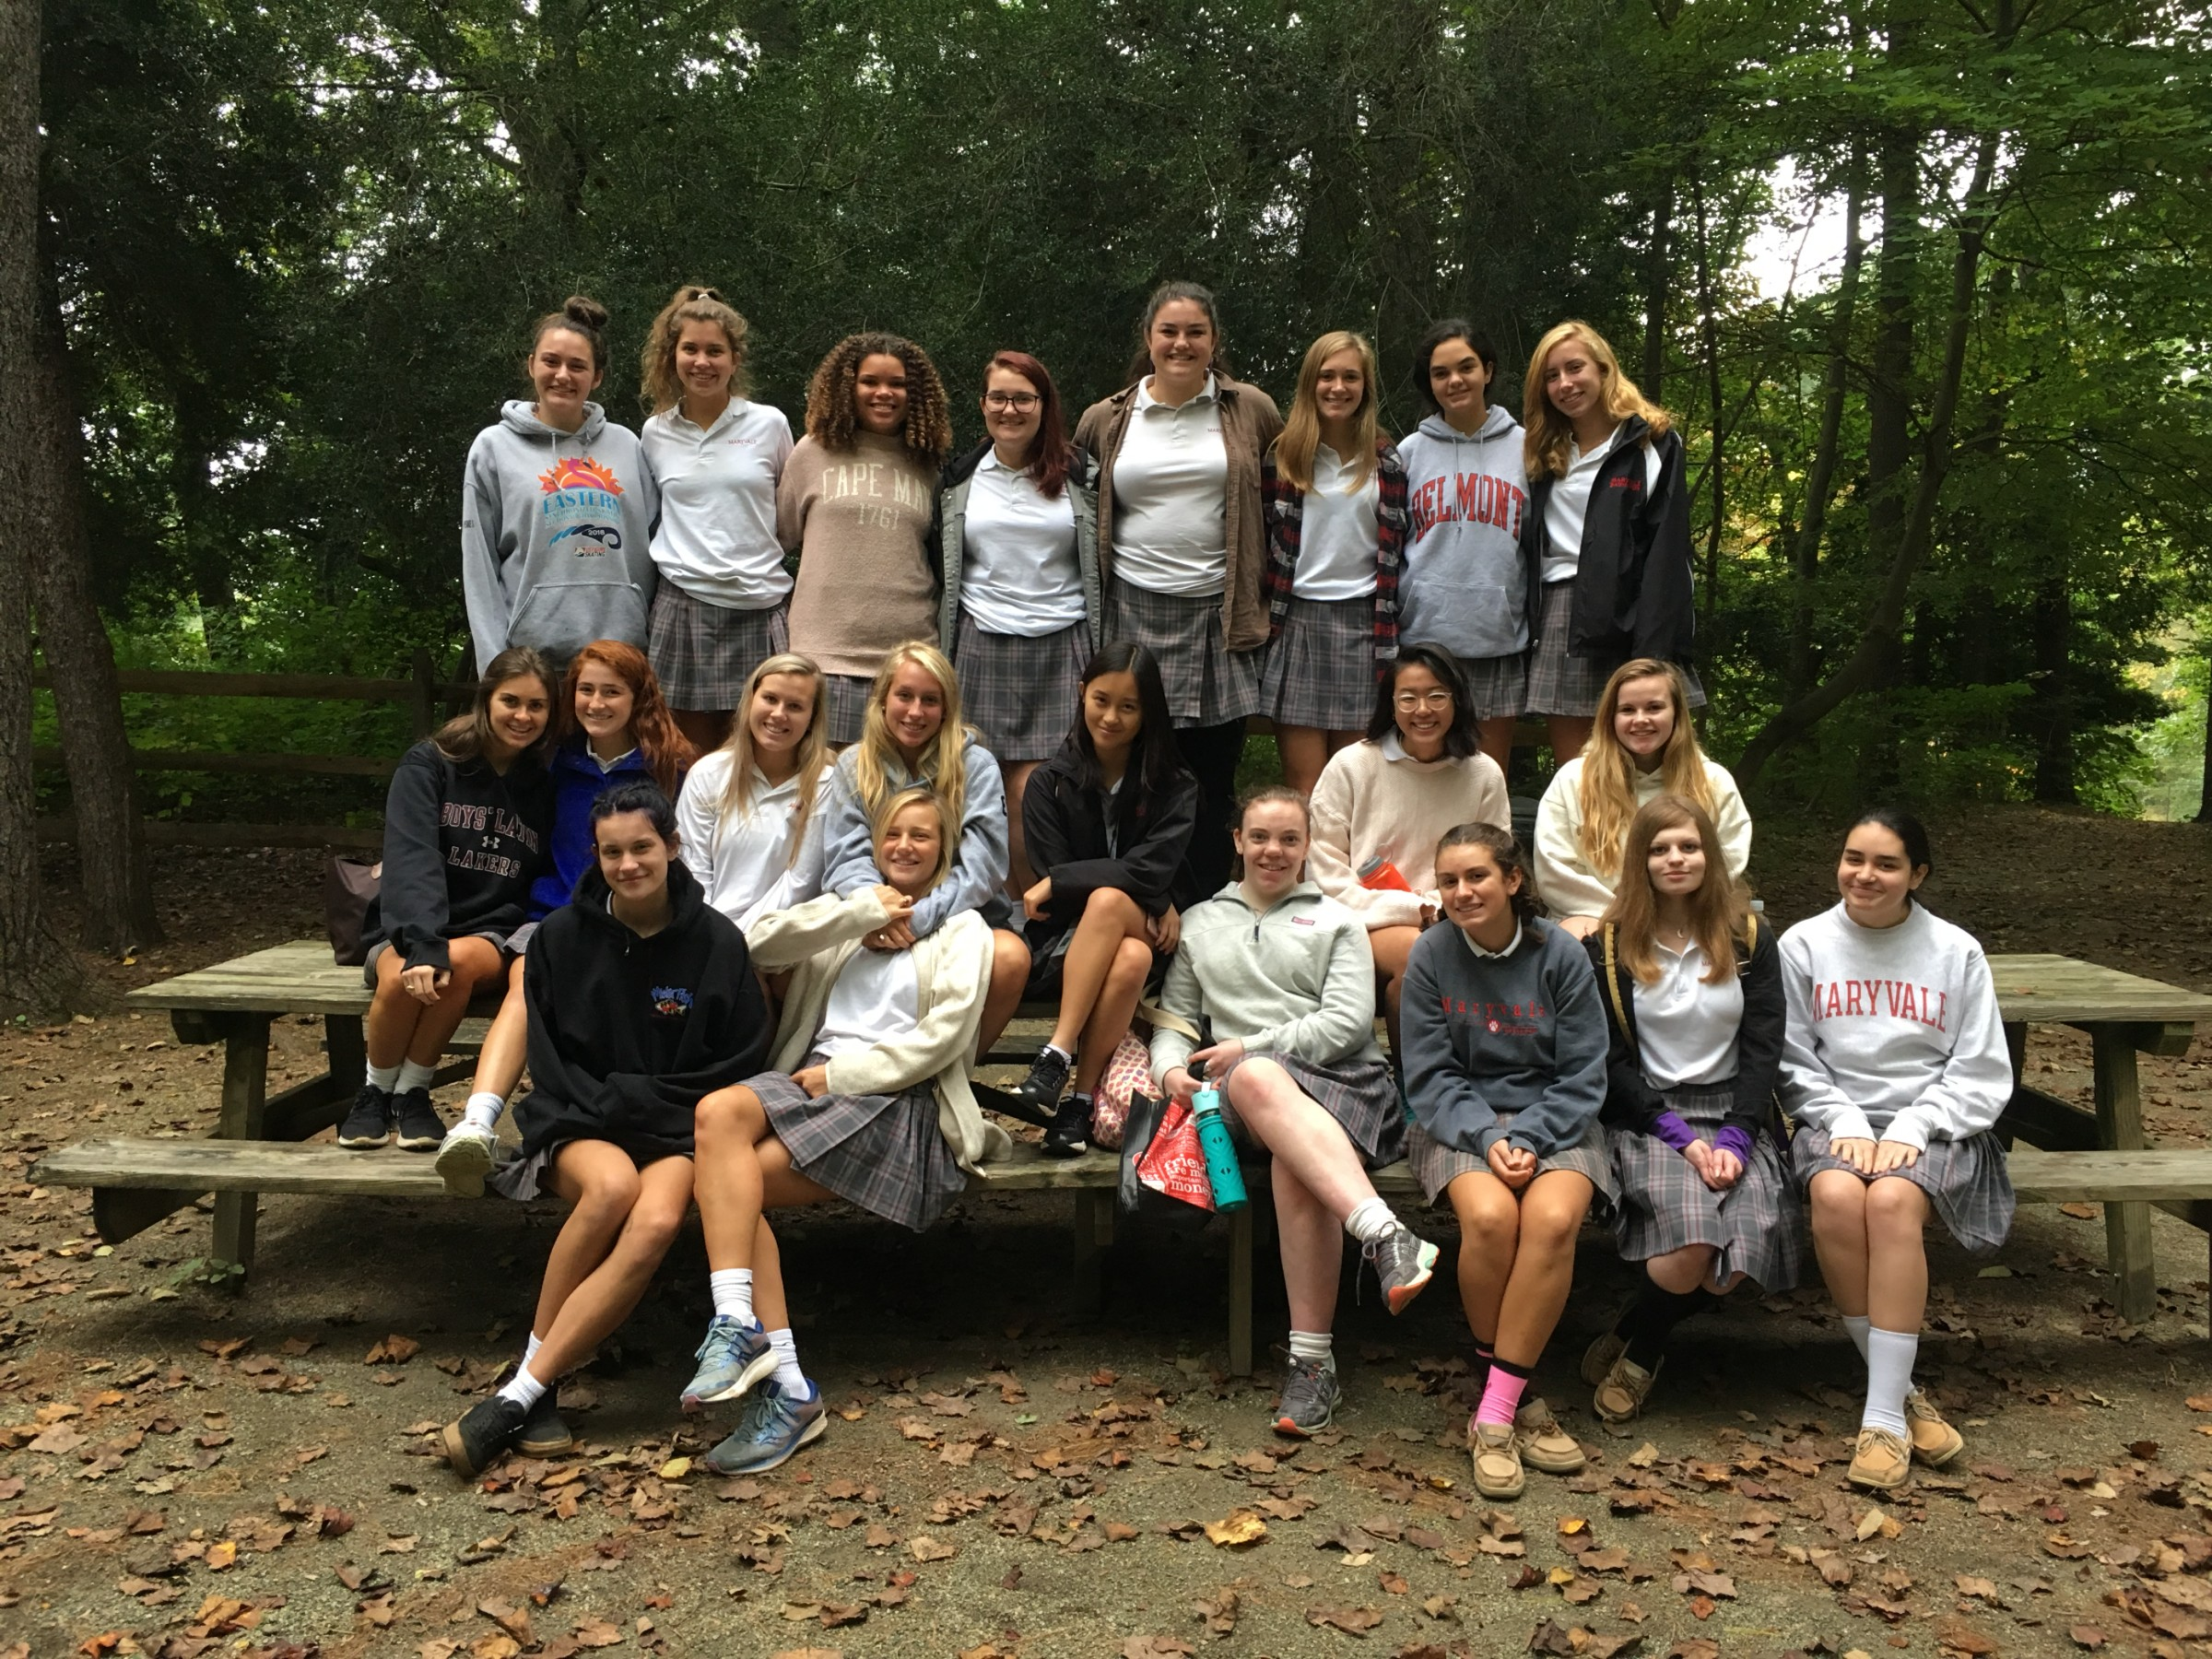 Learning at Longwood: Maryvale Art students visit Longwood Gardens